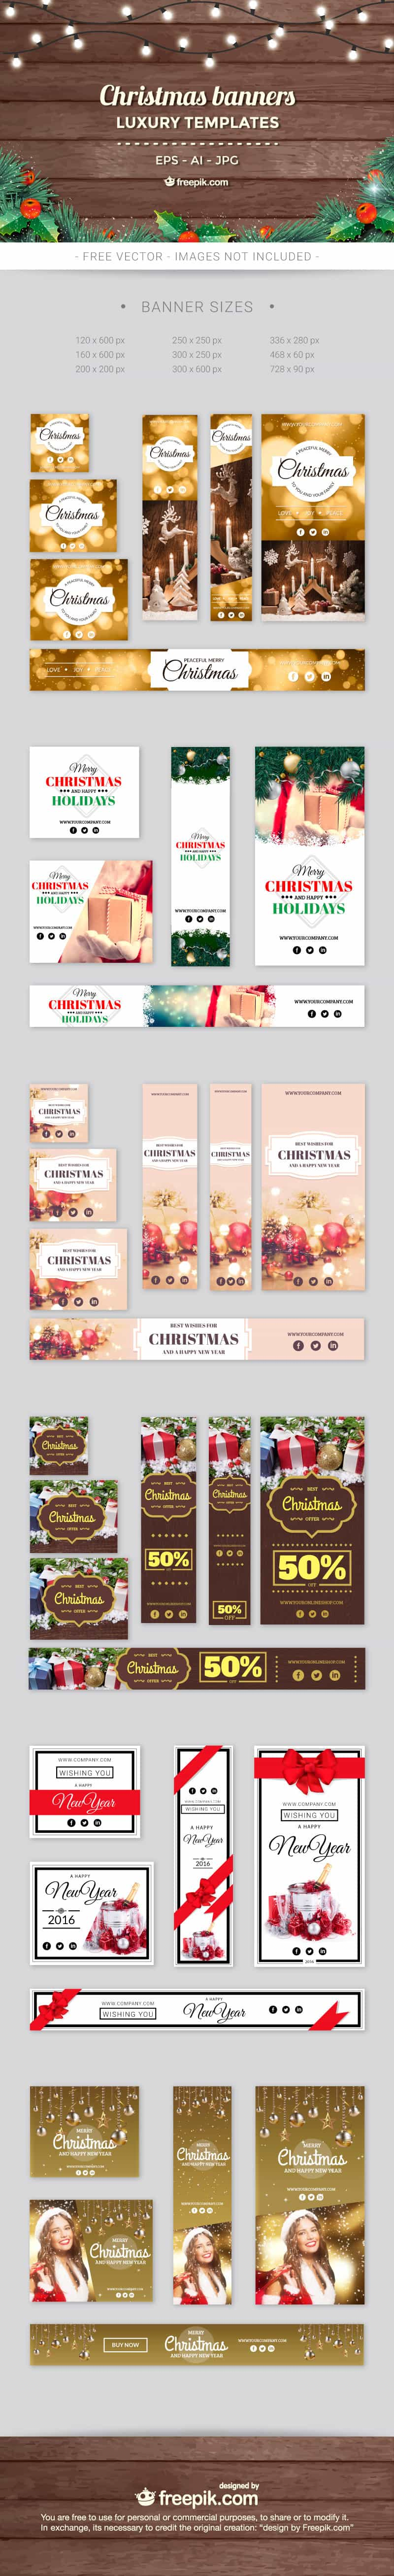 cld christmas freebies banners